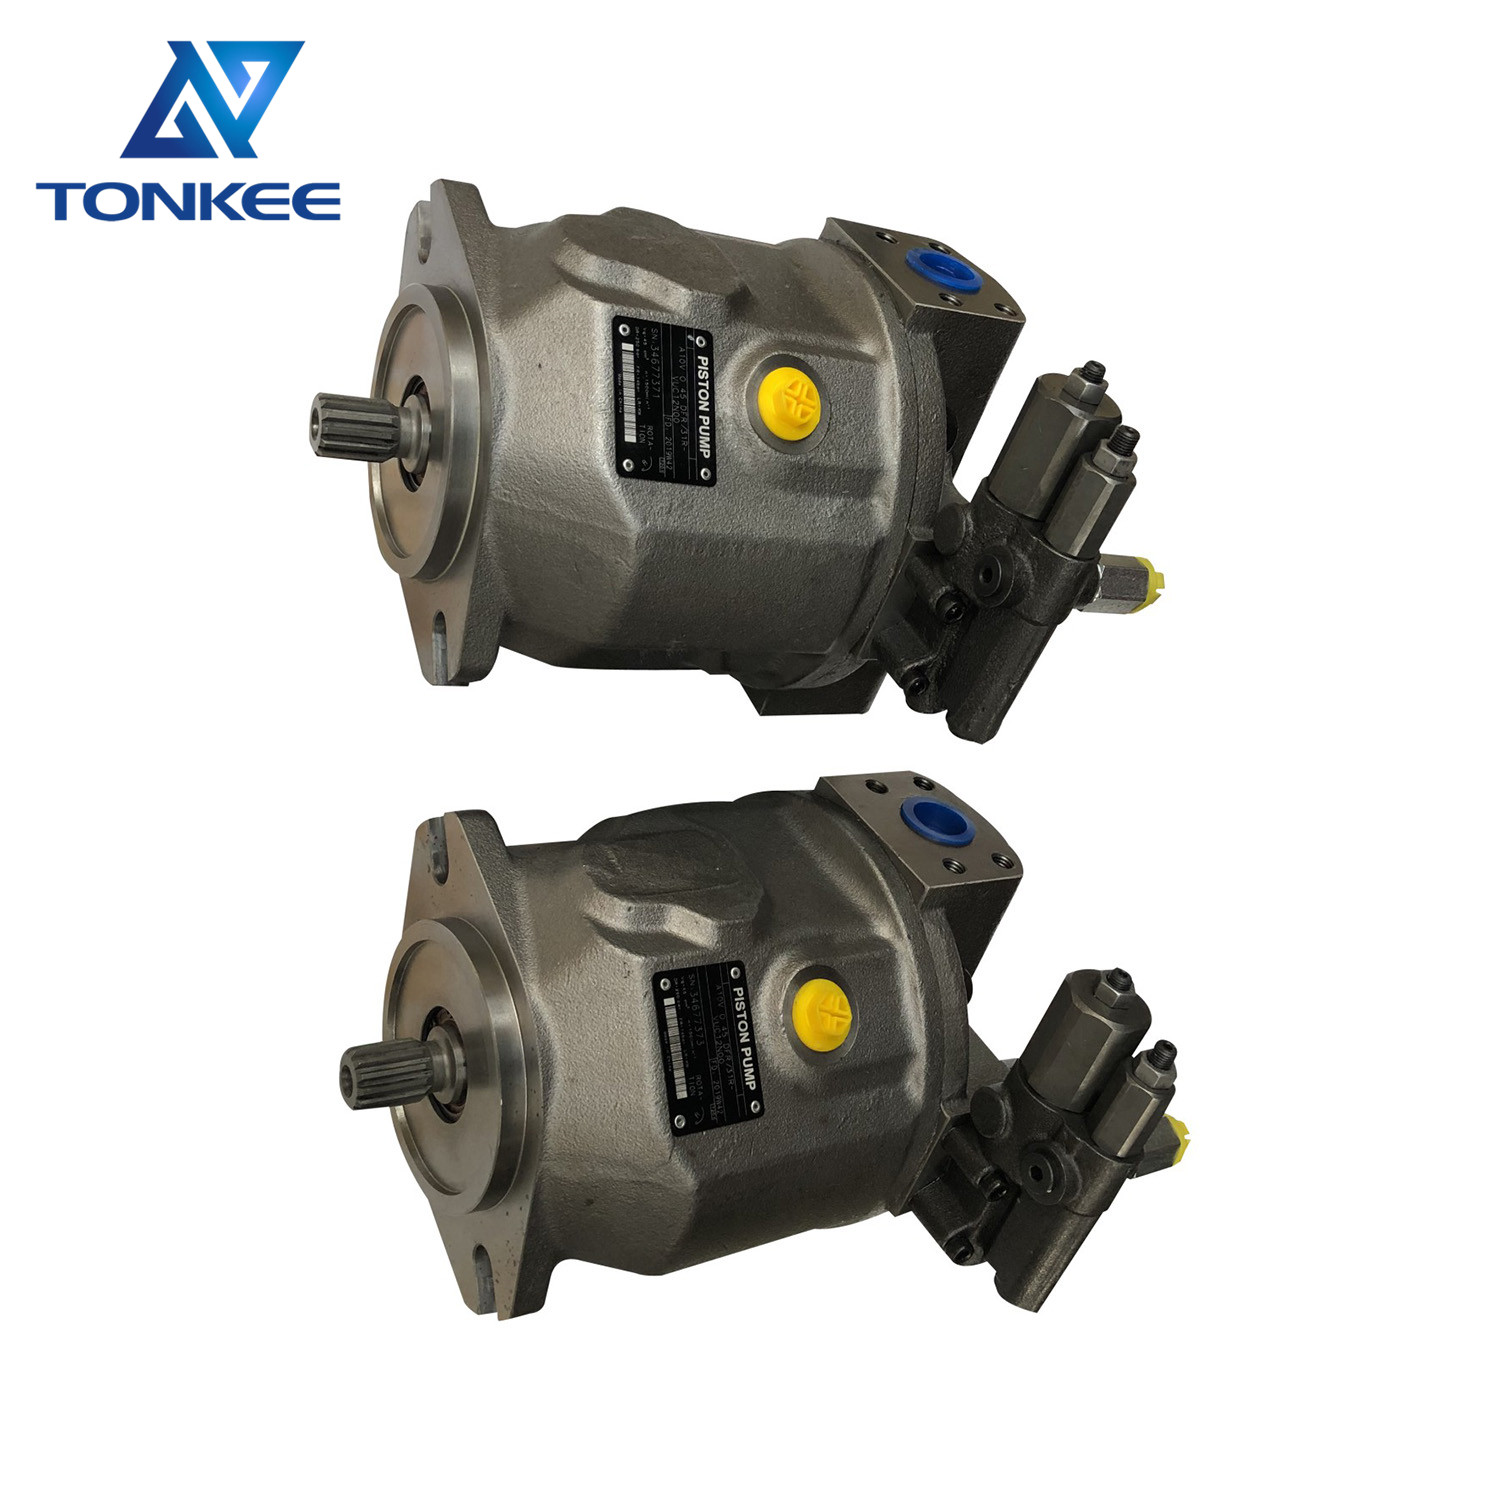 NEW A10VO45DFR31R-VUC12N00 piston variable Pump A10VO45 A10VO10 A10VO18 A10VO28 A10VO52 A10VO53 A10VO60 A10VO63 A10VO71 Main hydraulic axial piston pump suitable for REXROTH